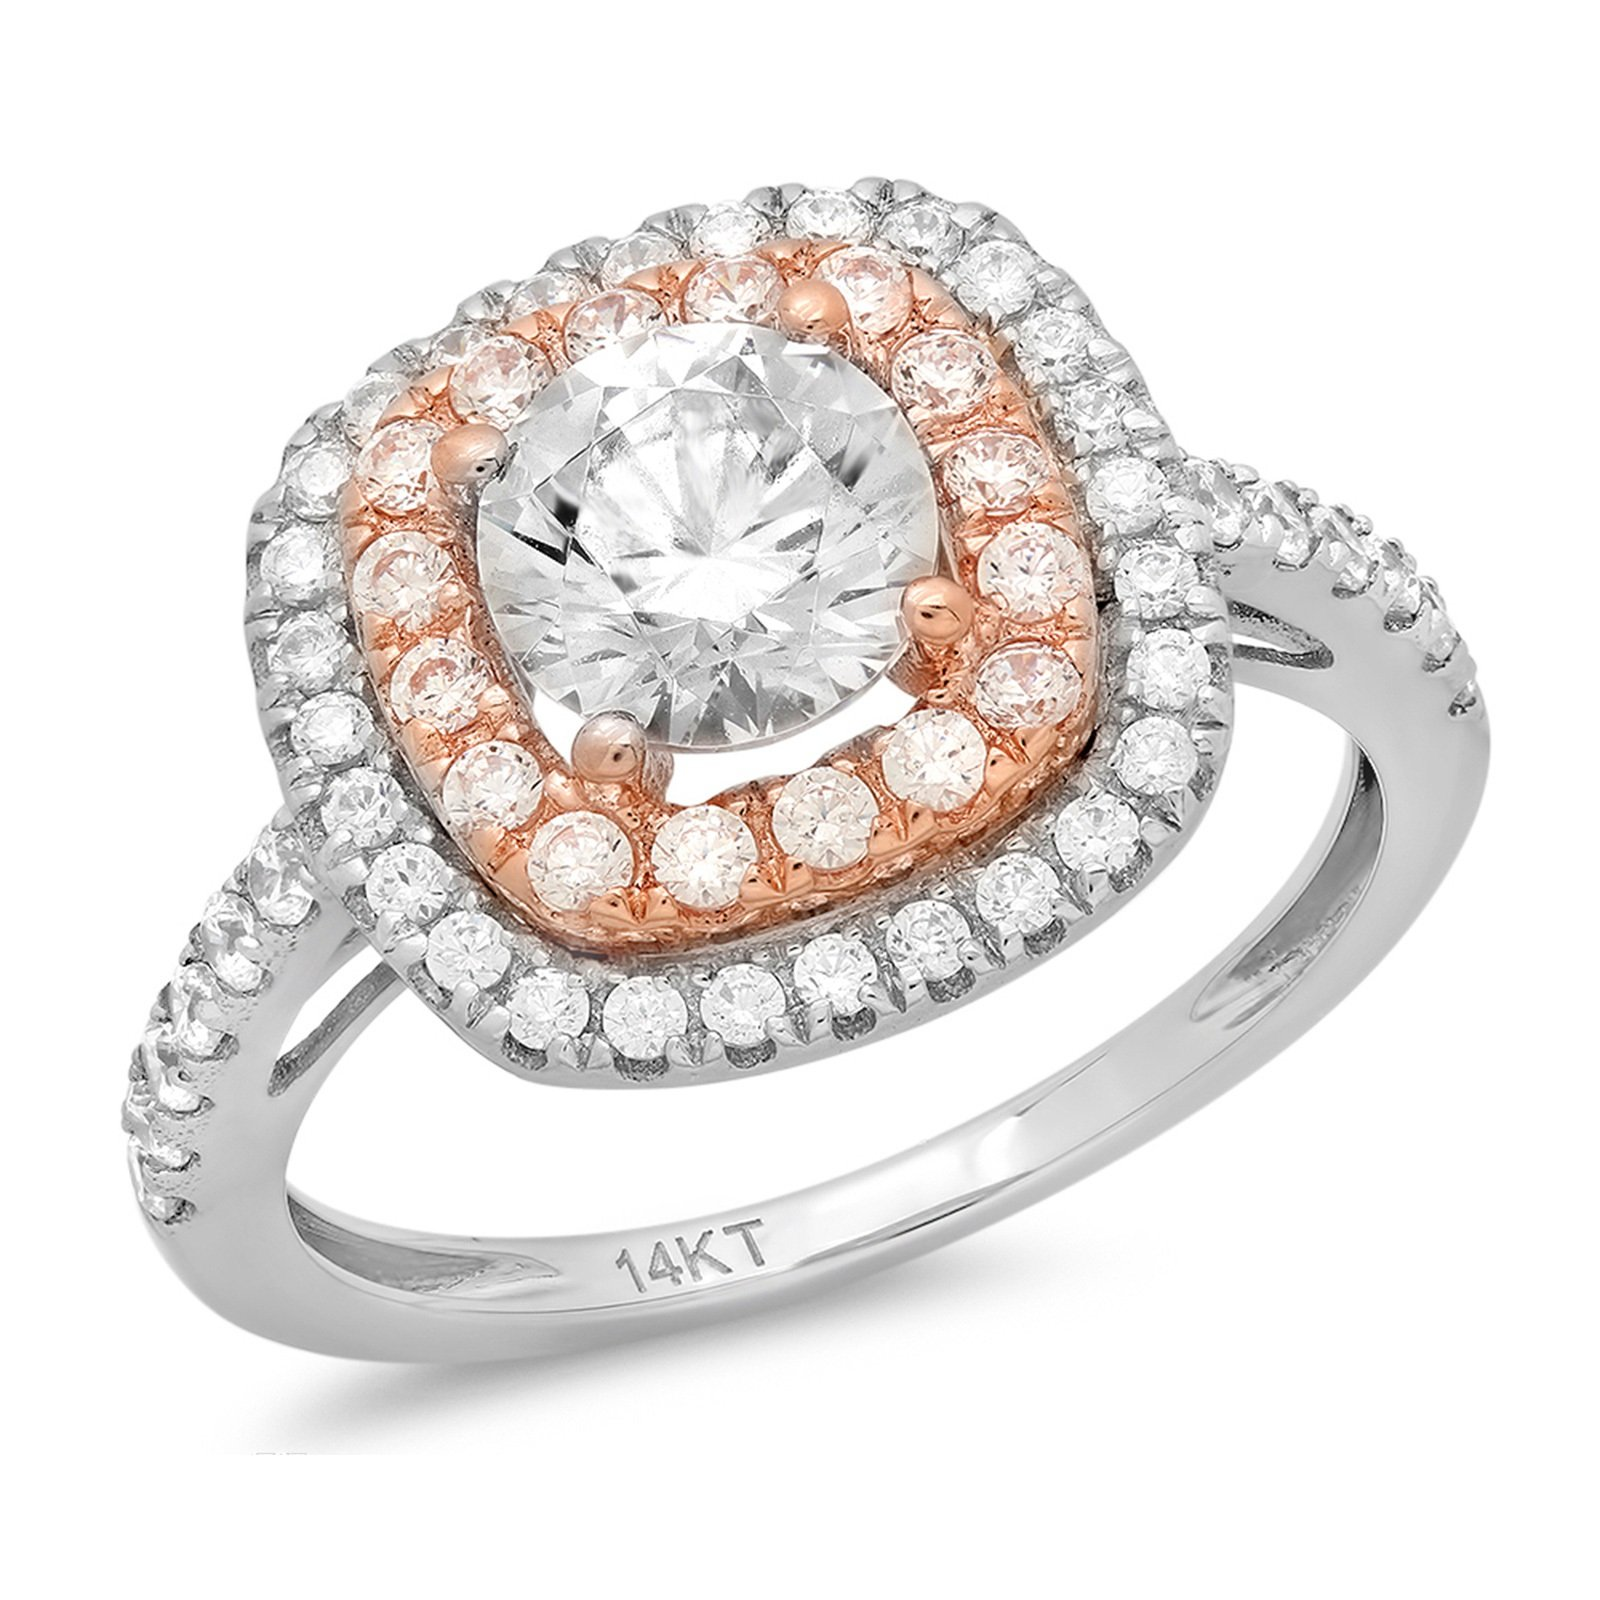 Clara Pucci 1.6 CT Round Cut Pave Double halo Anniversary Promise Engagement Ring Bridal band 14k White Rose Gold